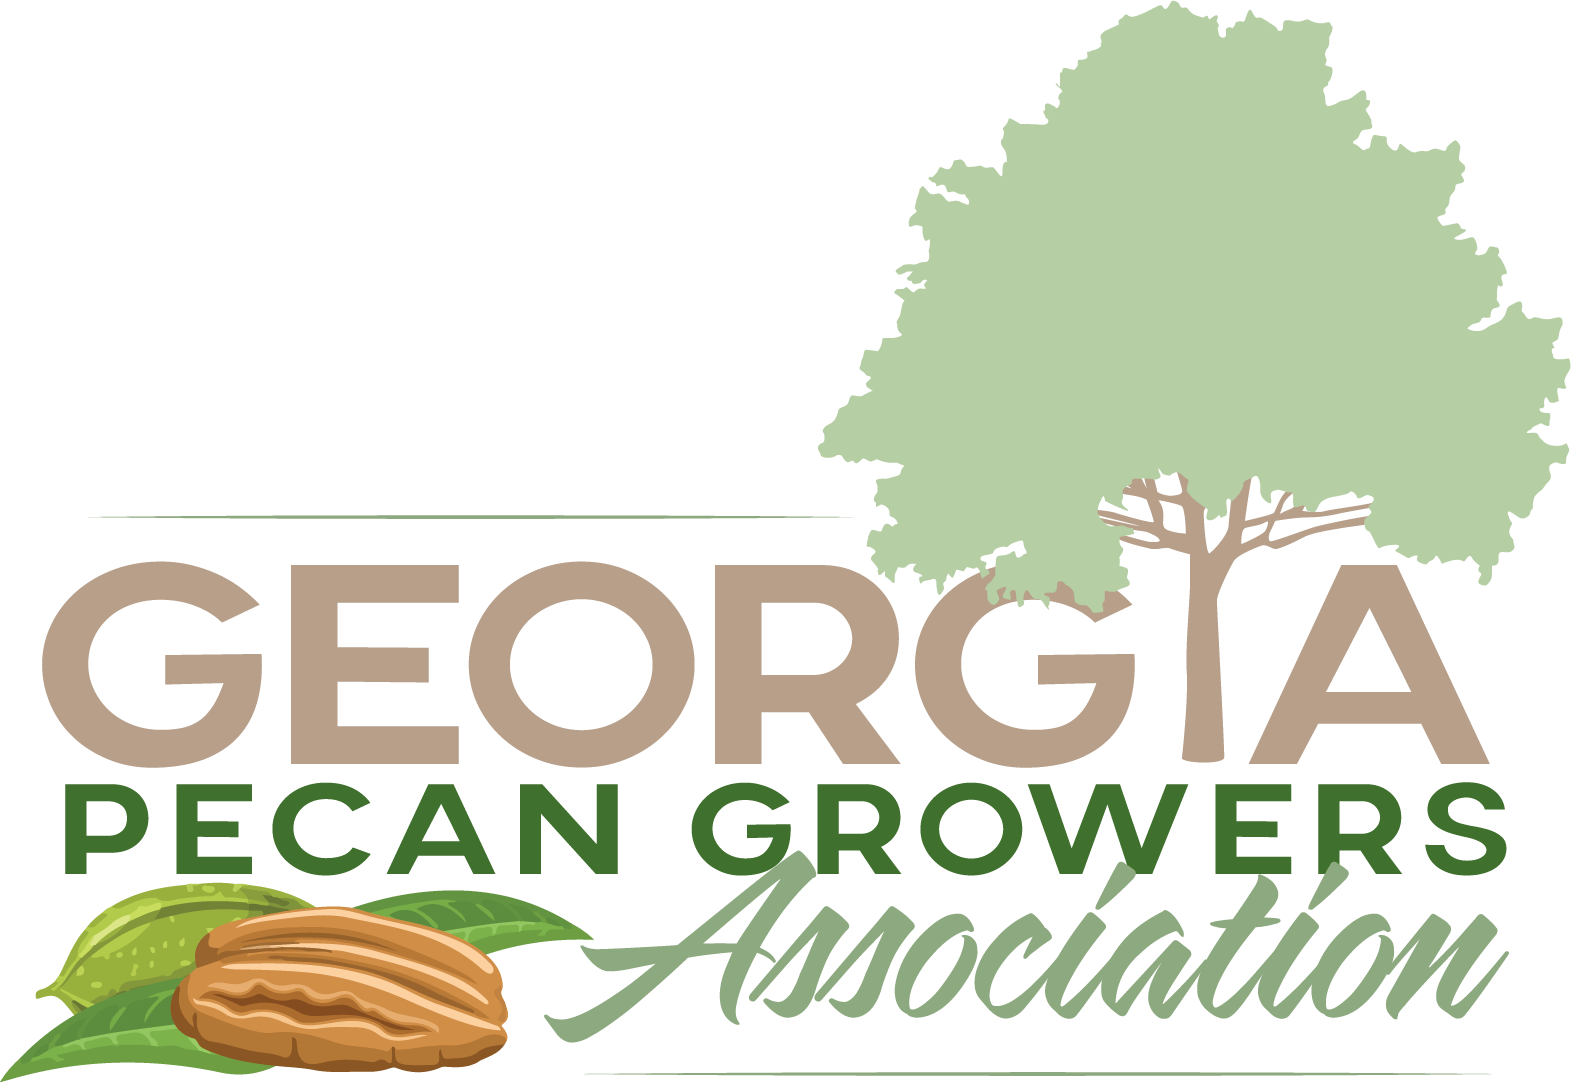 Pecans Georgia Pecan Growers Ociation Nature S Health